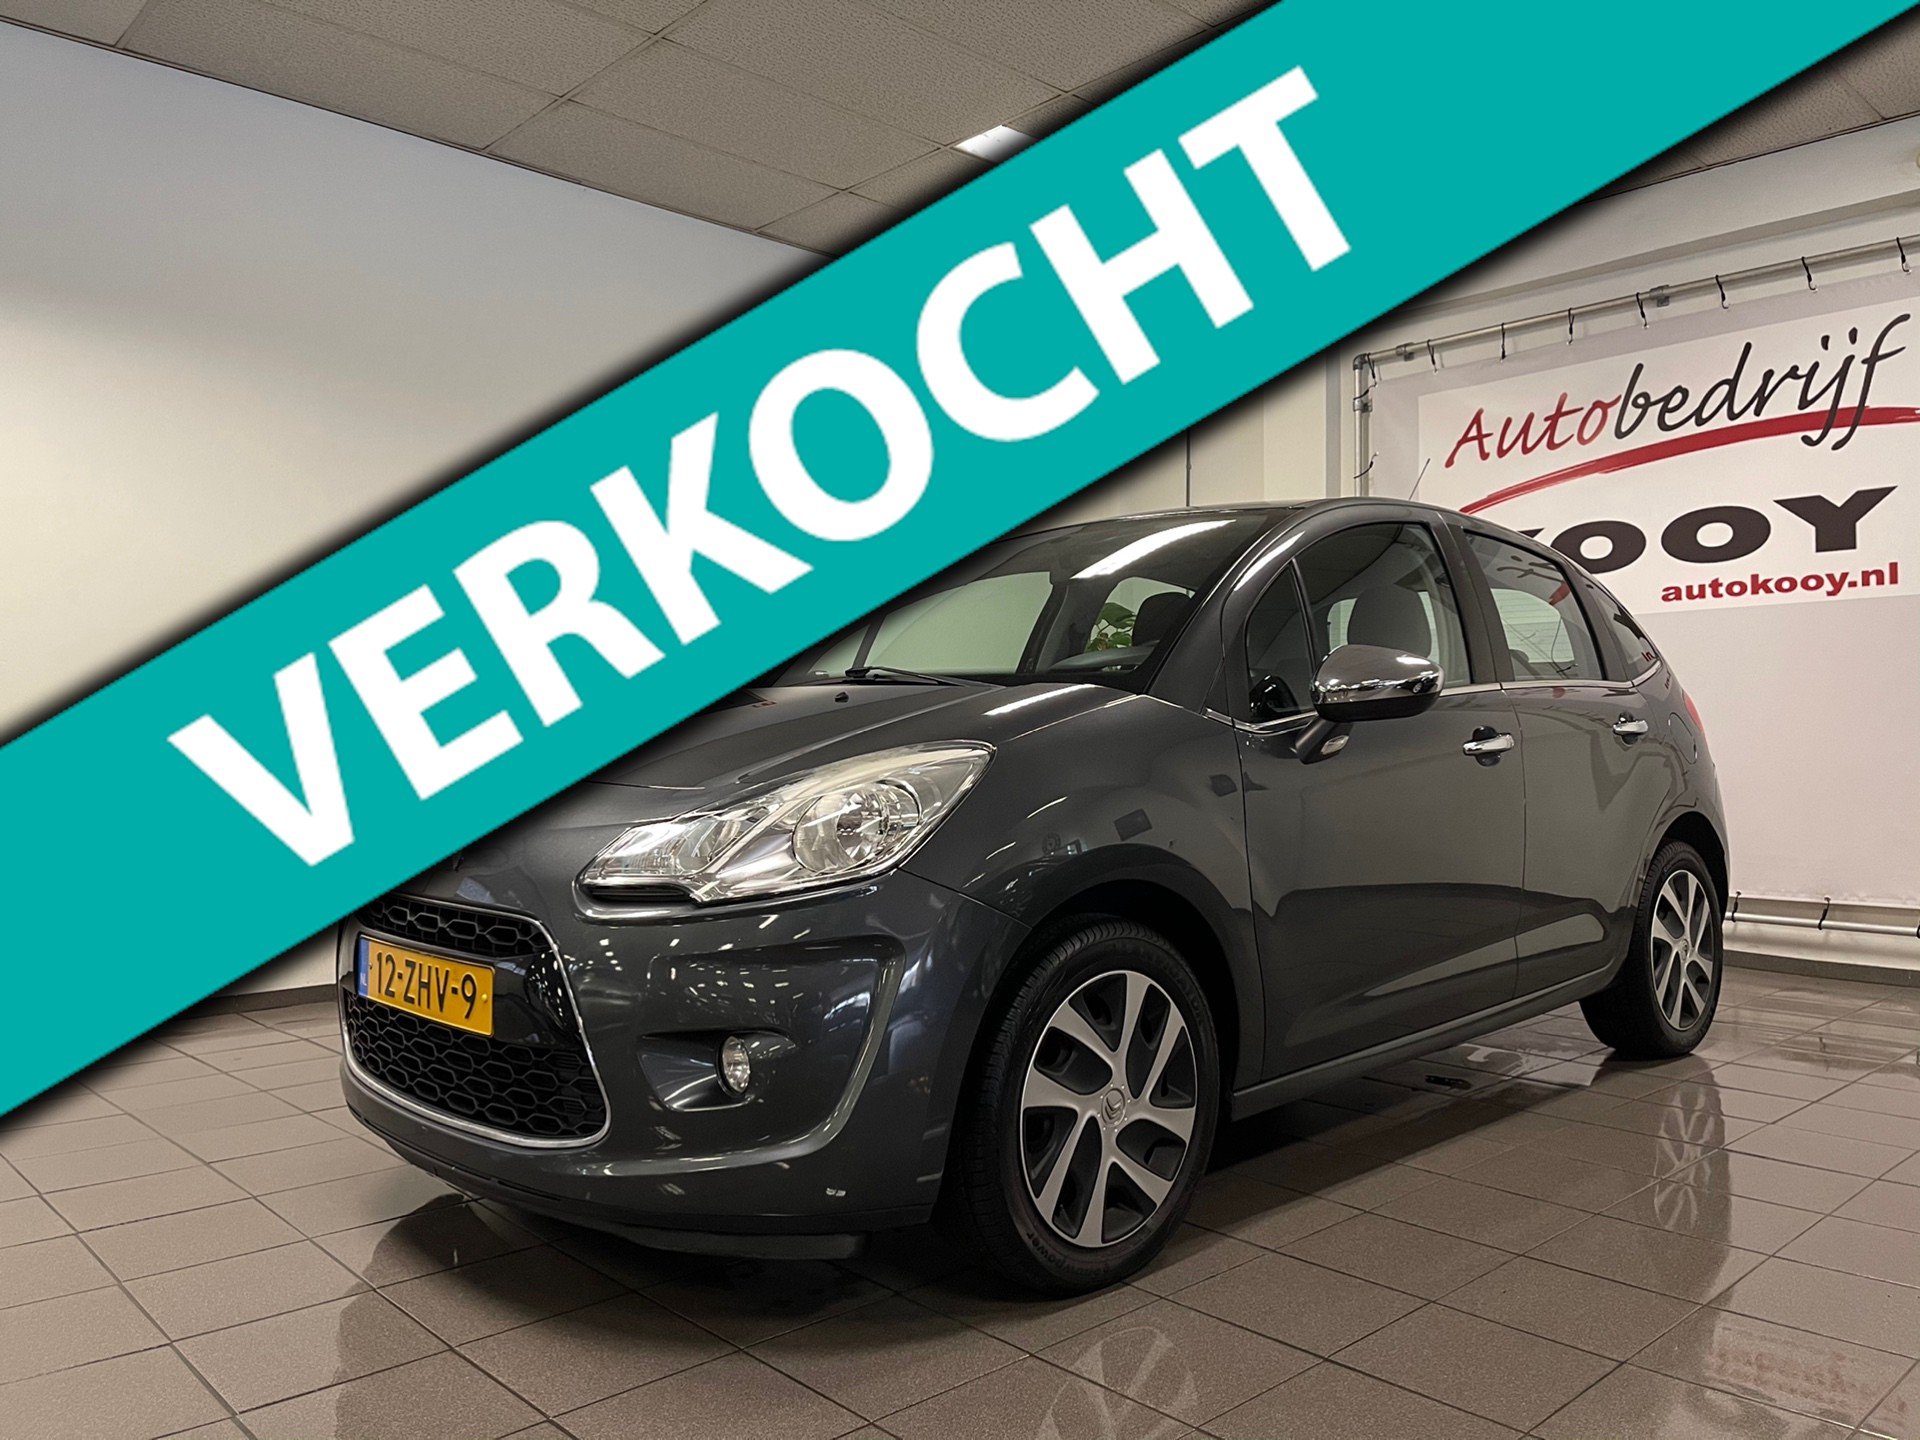 Citroen C3 1.2 VTi Collection * Airco-ecc / Cruise control / NL Auto *